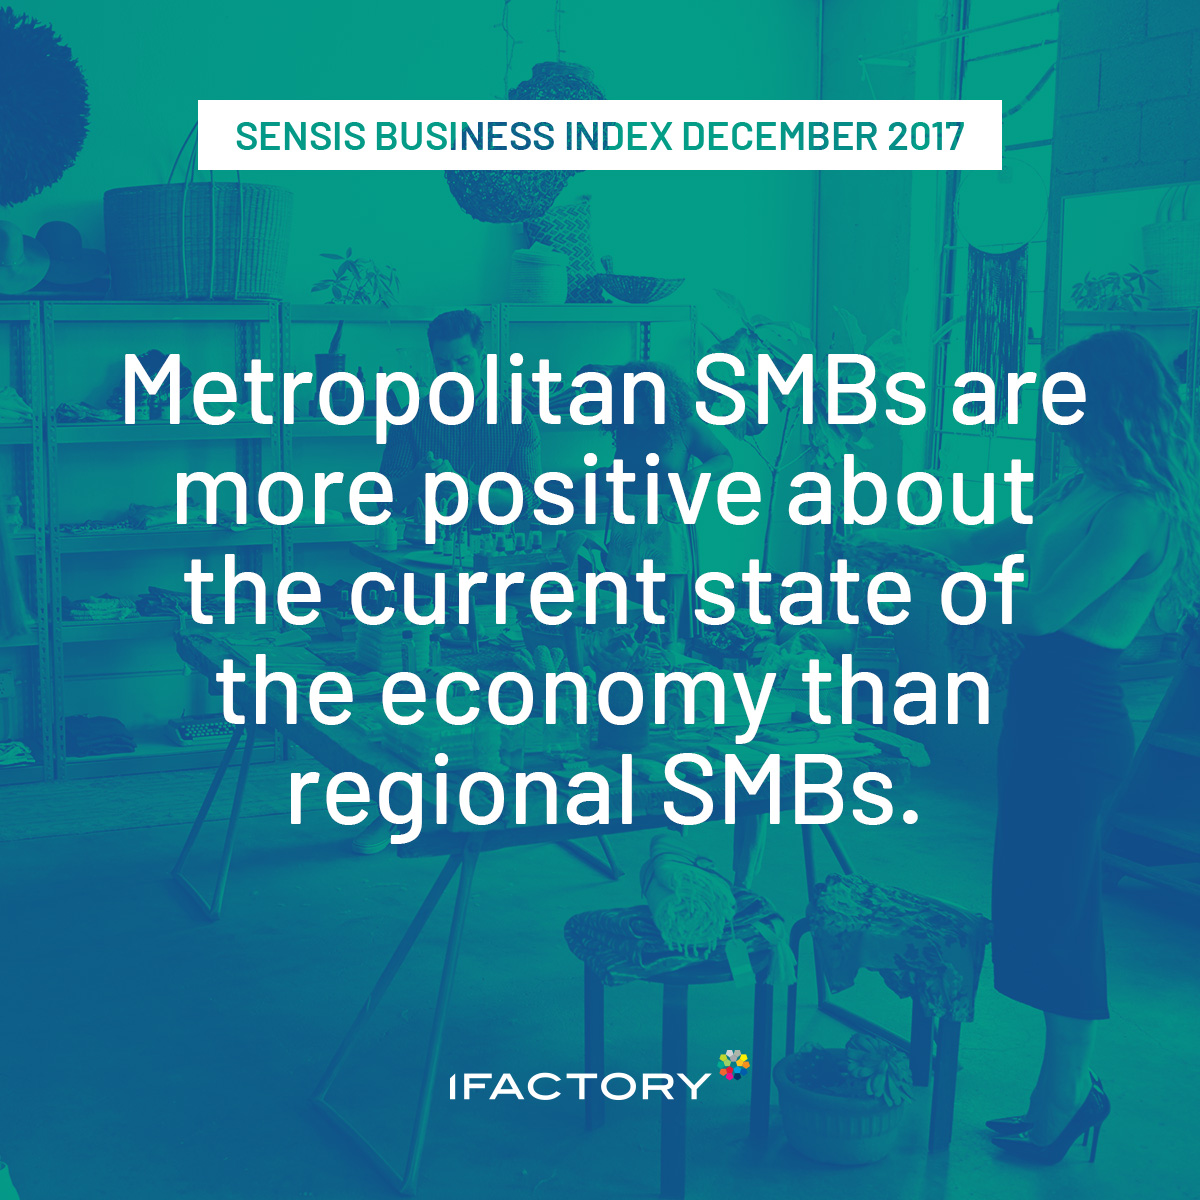 Metropolitan-SMBs-are-more-positive-about-the-current-state-of-the-economy-than-regional-SMBs